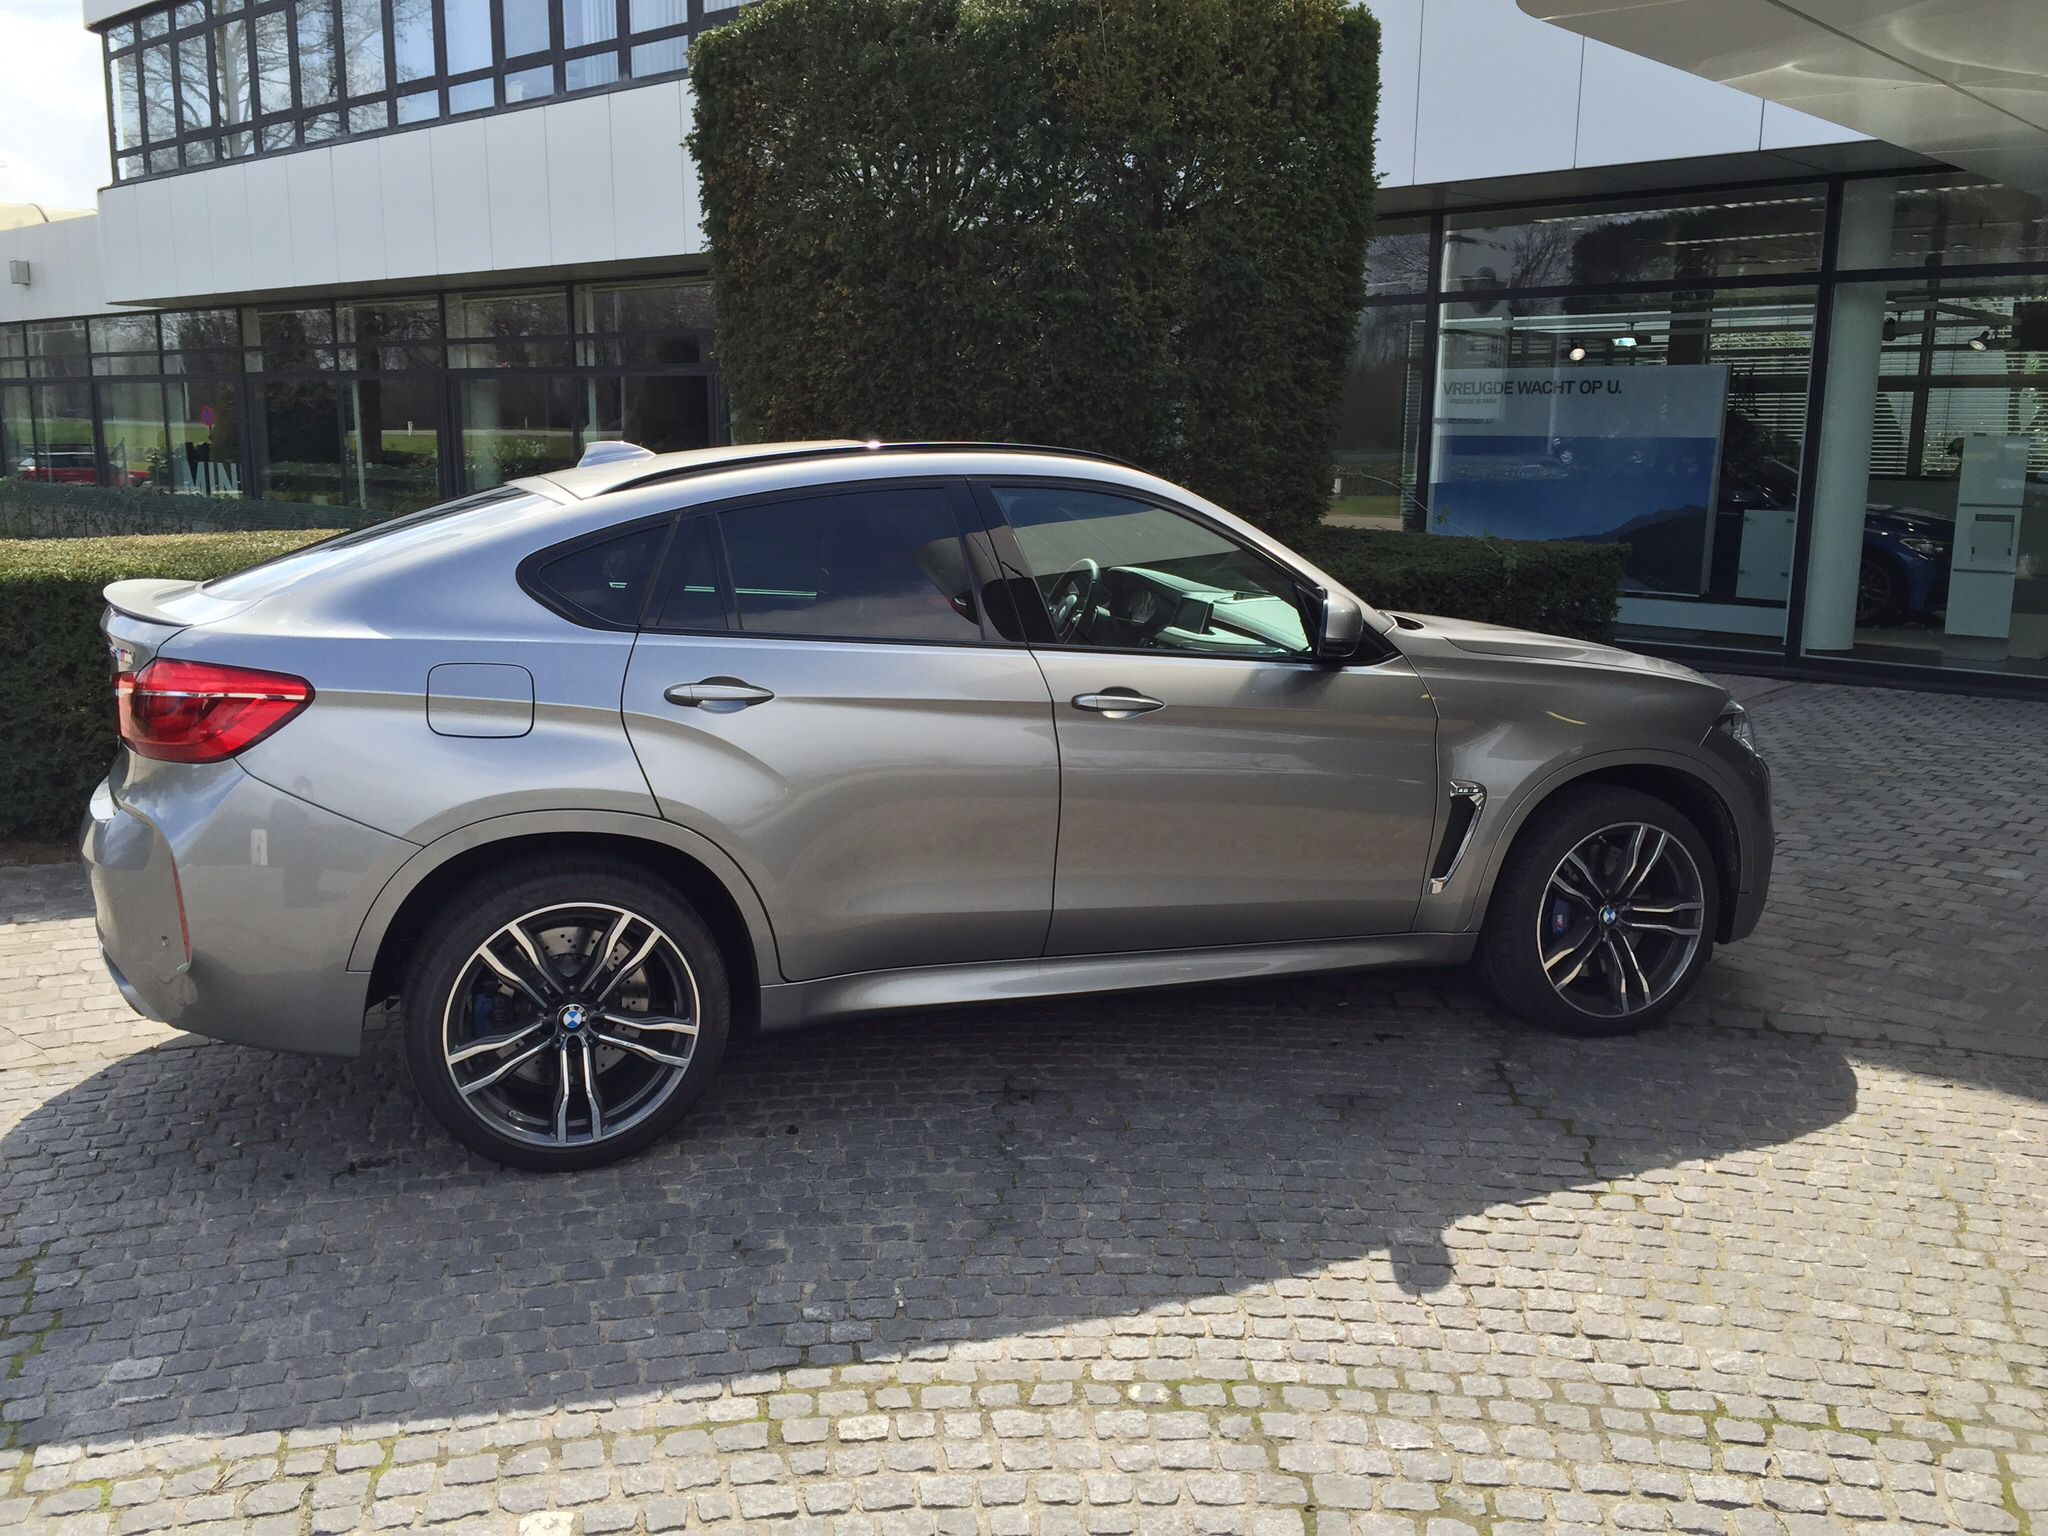 New Bmw X6m In Daytona Grey Love The Colour Cars Cars New